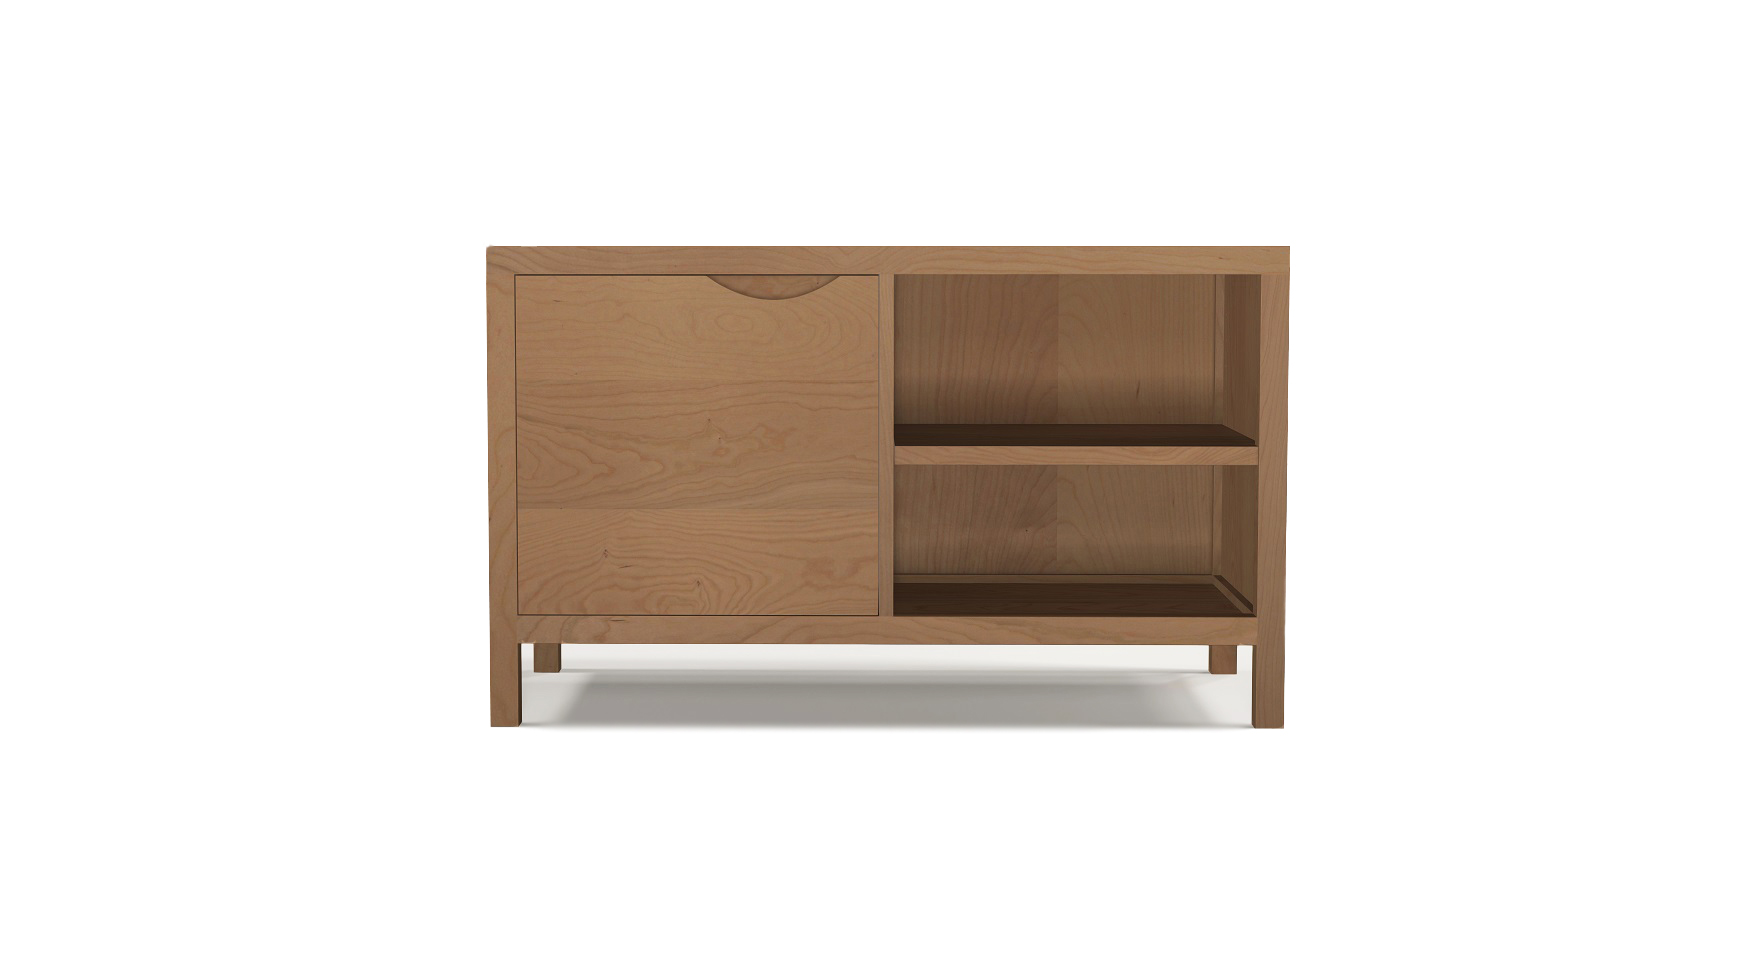 Cherry wood media cabinet with an integrated handle in the single door